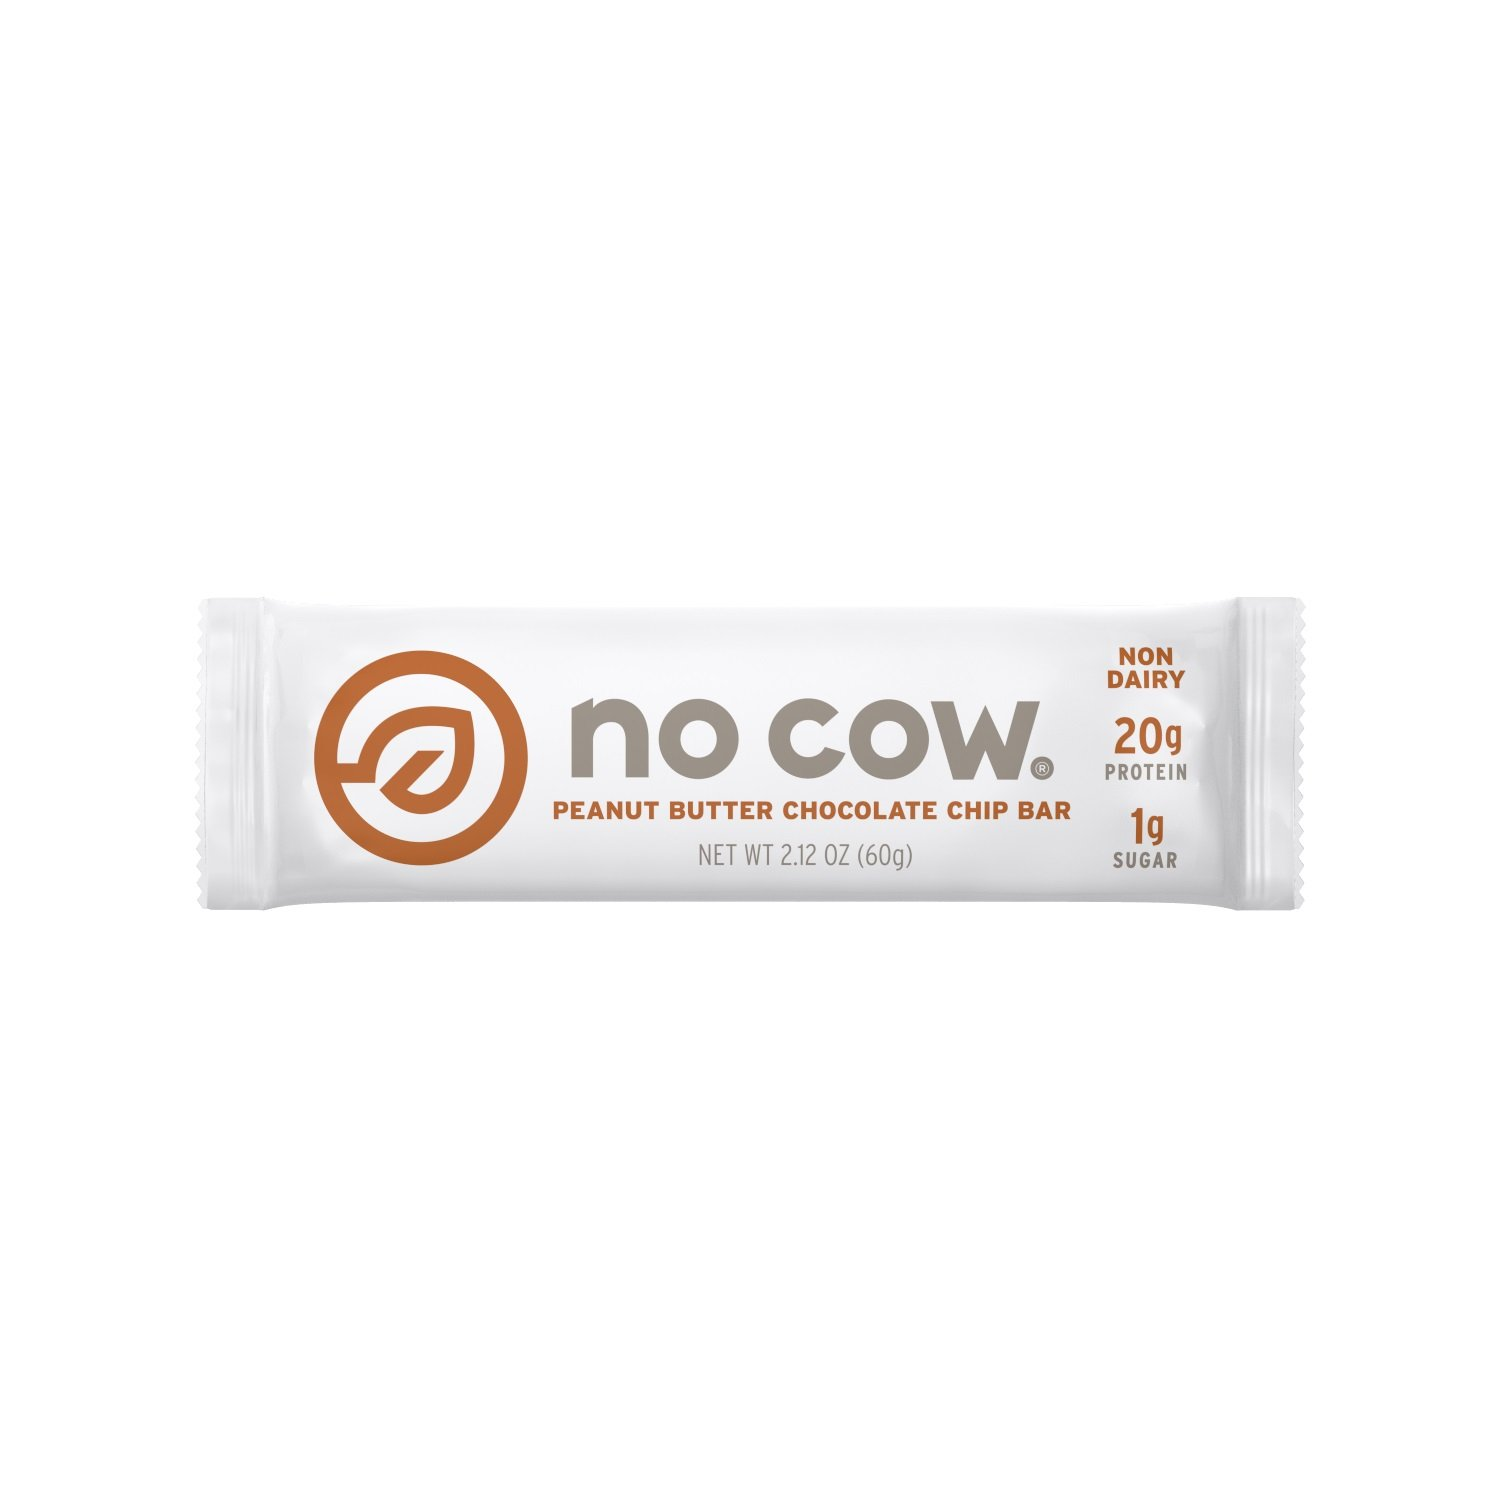 No Cow Protein Bar, Peanut Butter Chocolate Chip, 20g Plant Based Protein, Low Sugar, Dairy Free, Gluten Free, Vegan, 12 Count ( Pack May Vary )